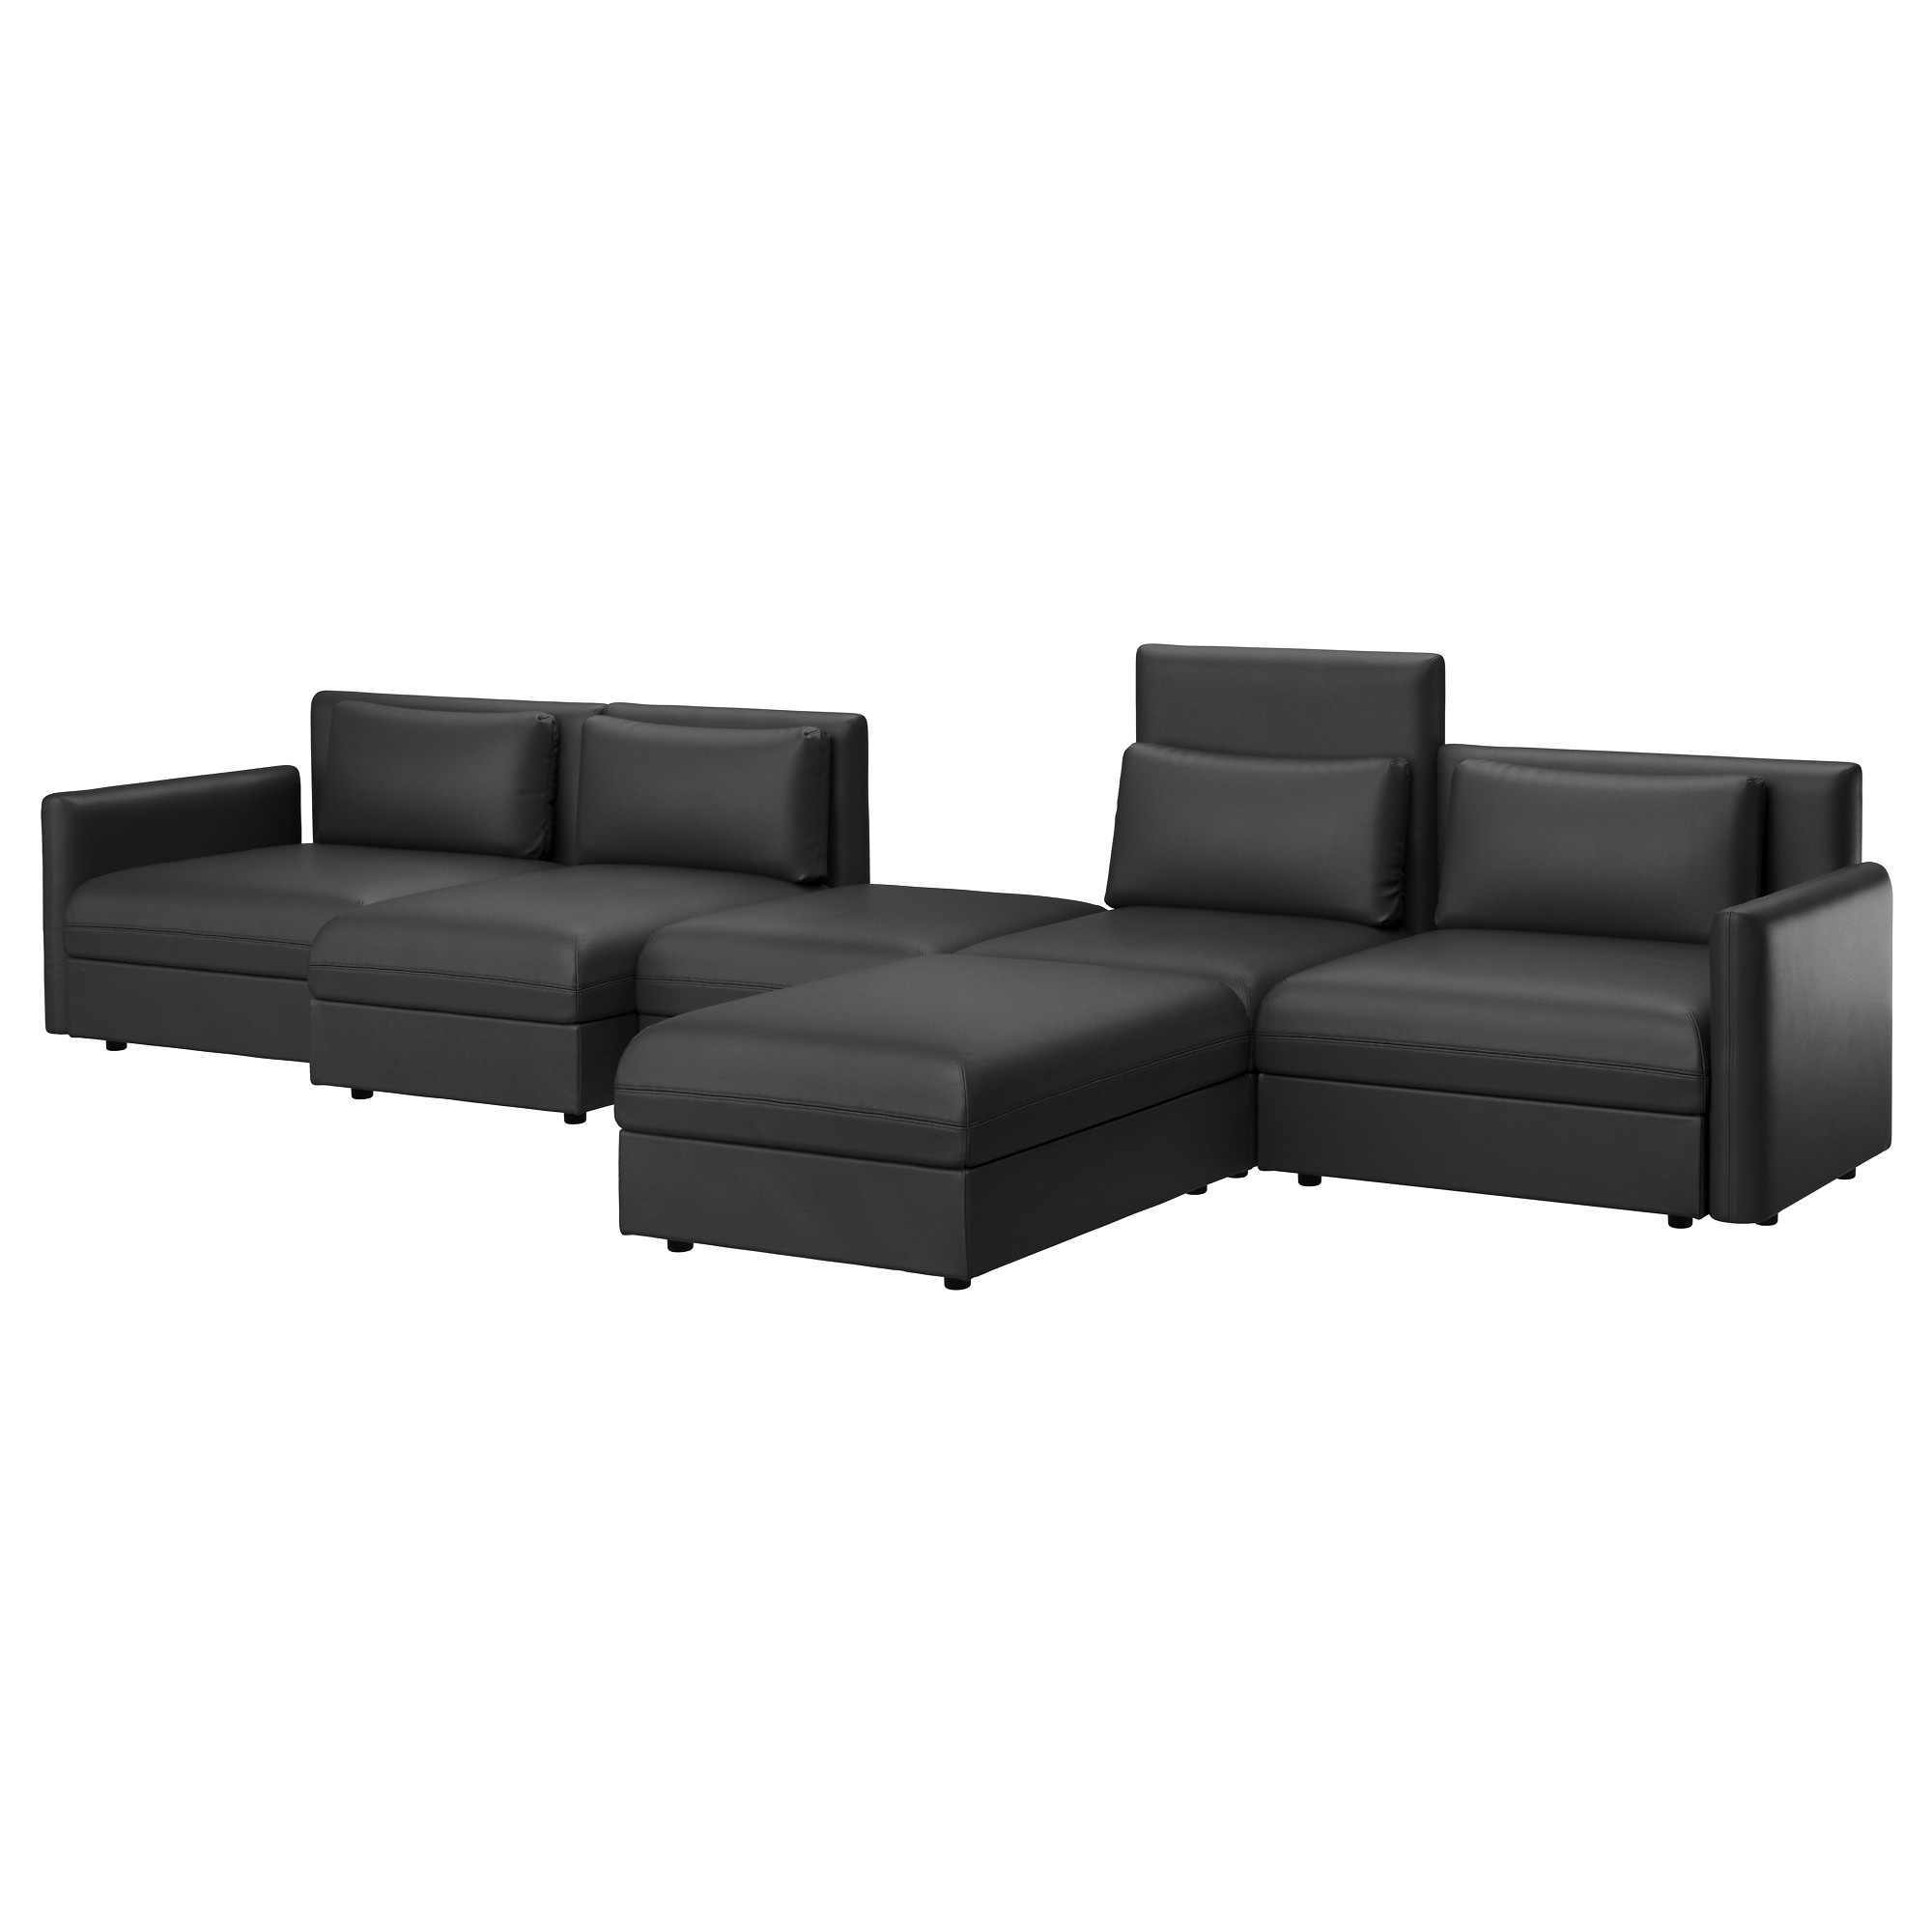 Chaise sofa - Vallentuna Sectional 5 Seat Hillared Dark Gray Width 183 1 2